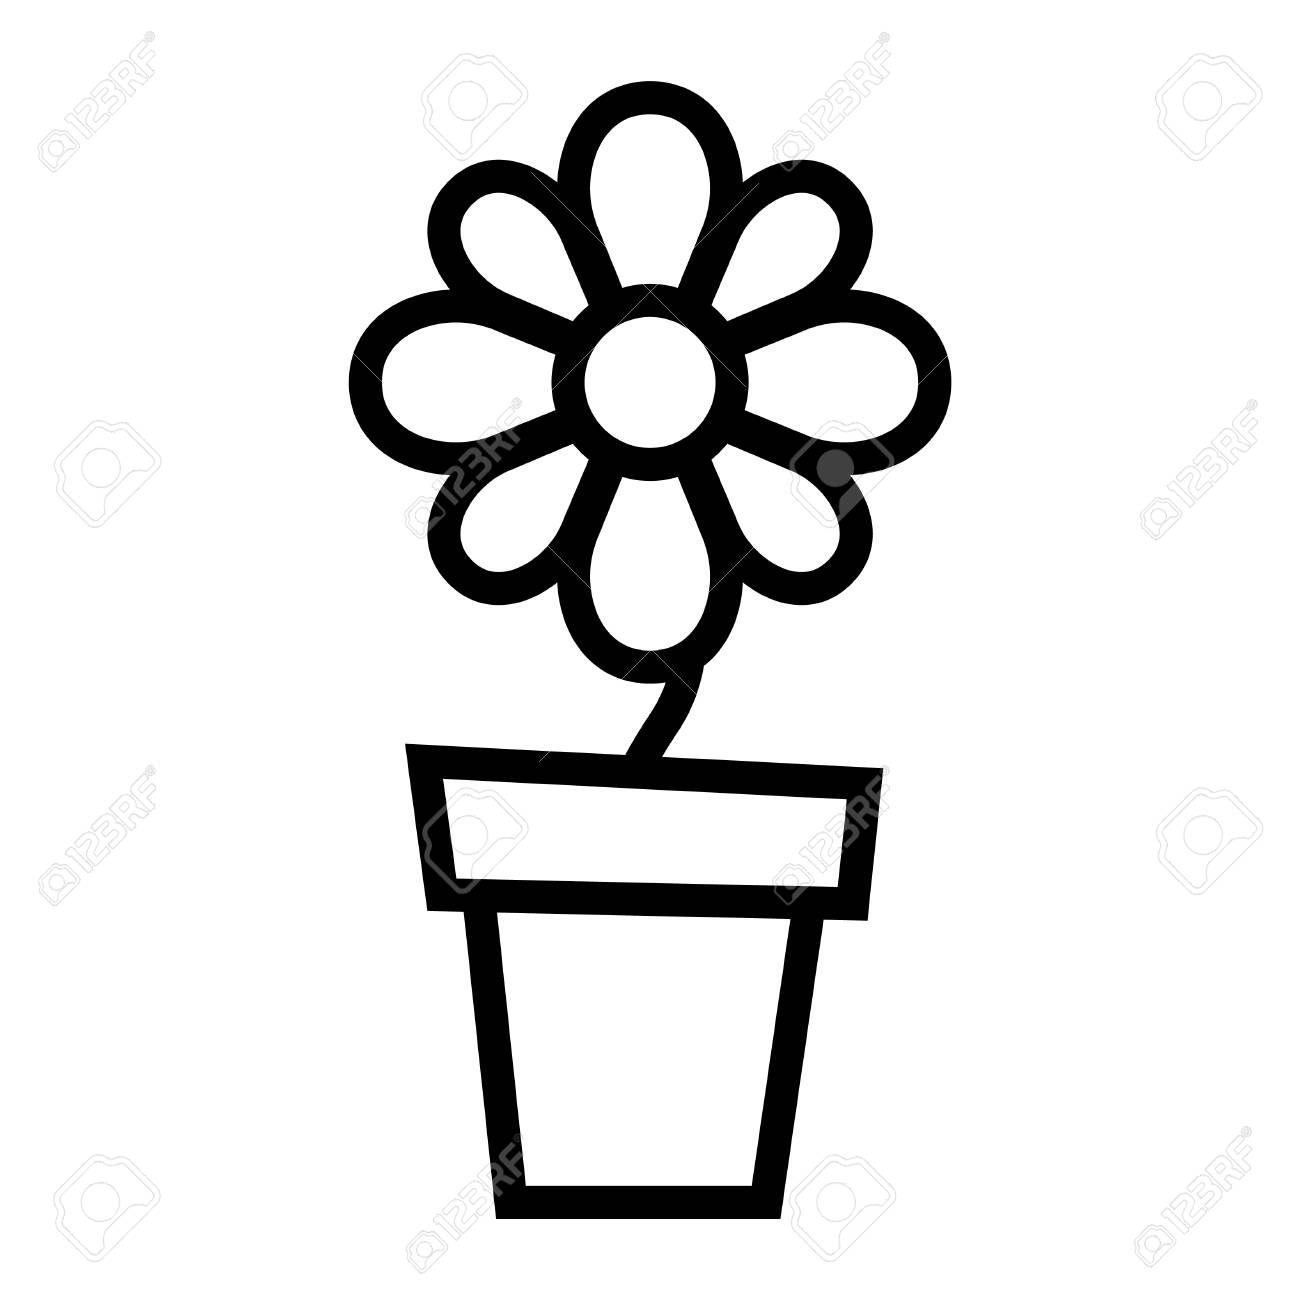 Flower Pot Vector Icon Royalty Free Cliparts Vectors And Stock